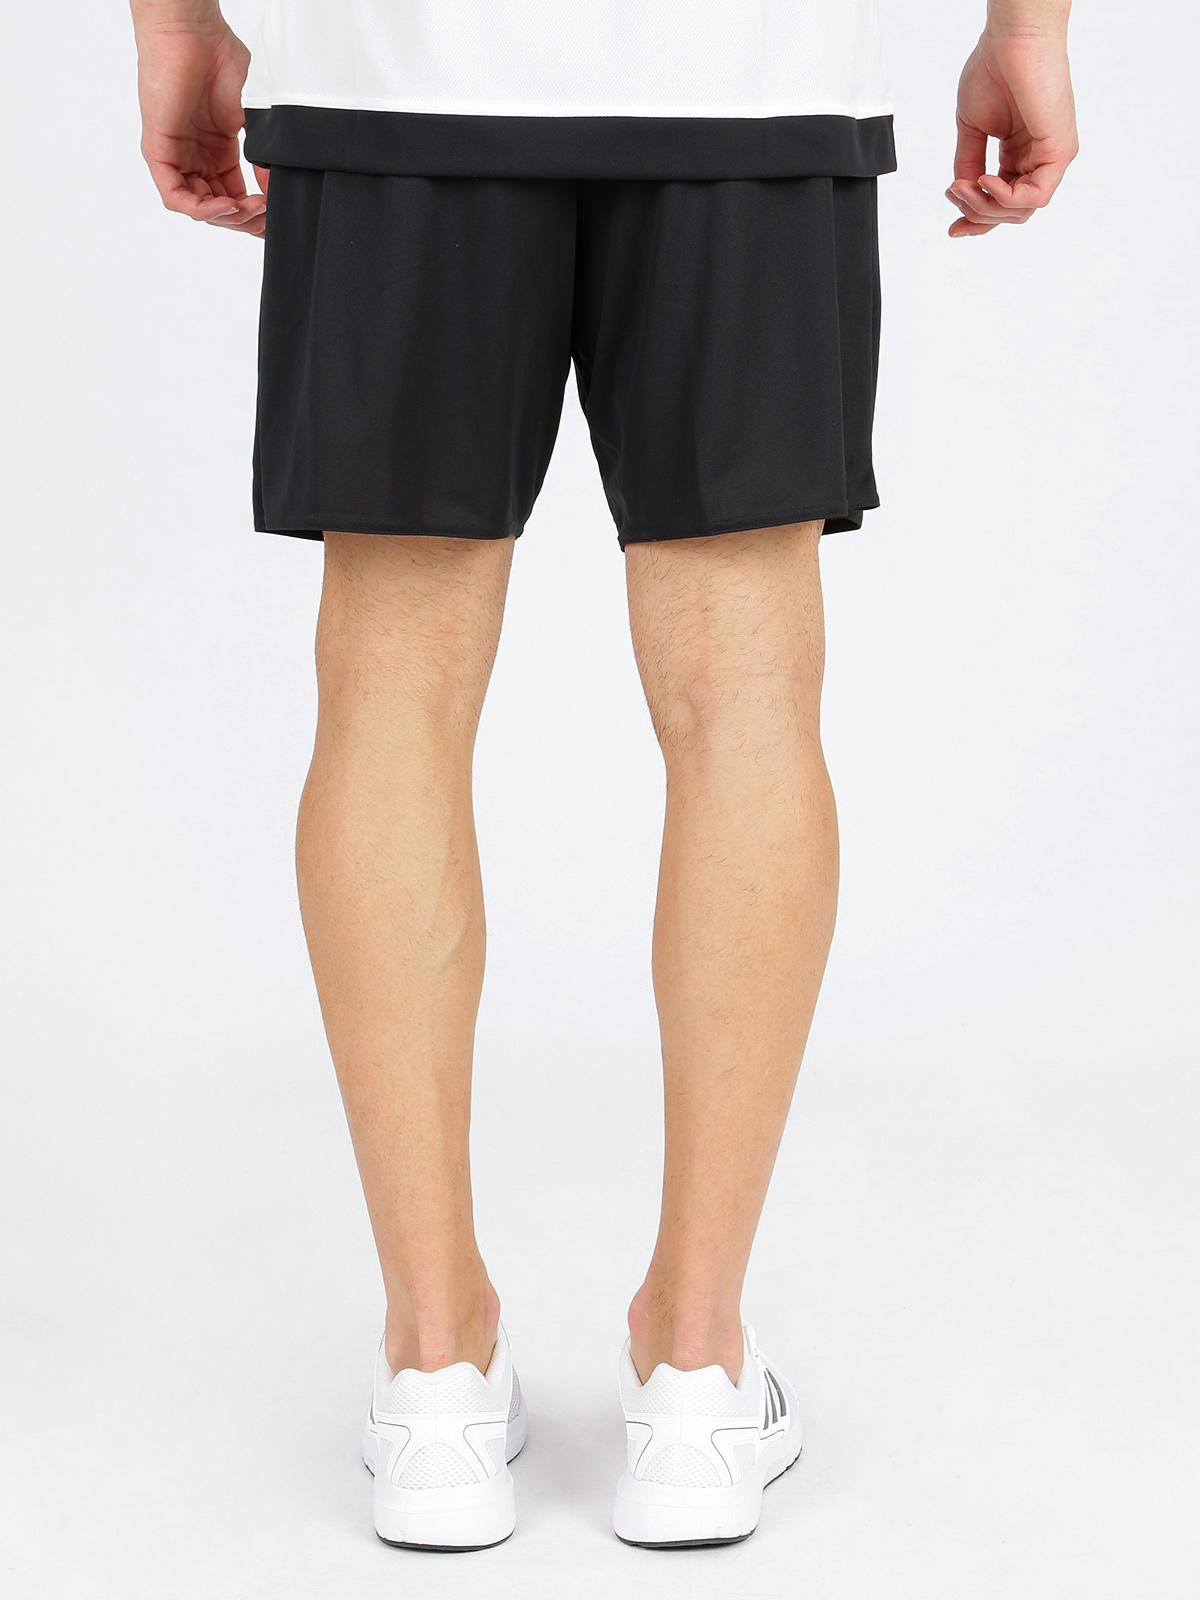 uomo nero and bianca adidas shorts